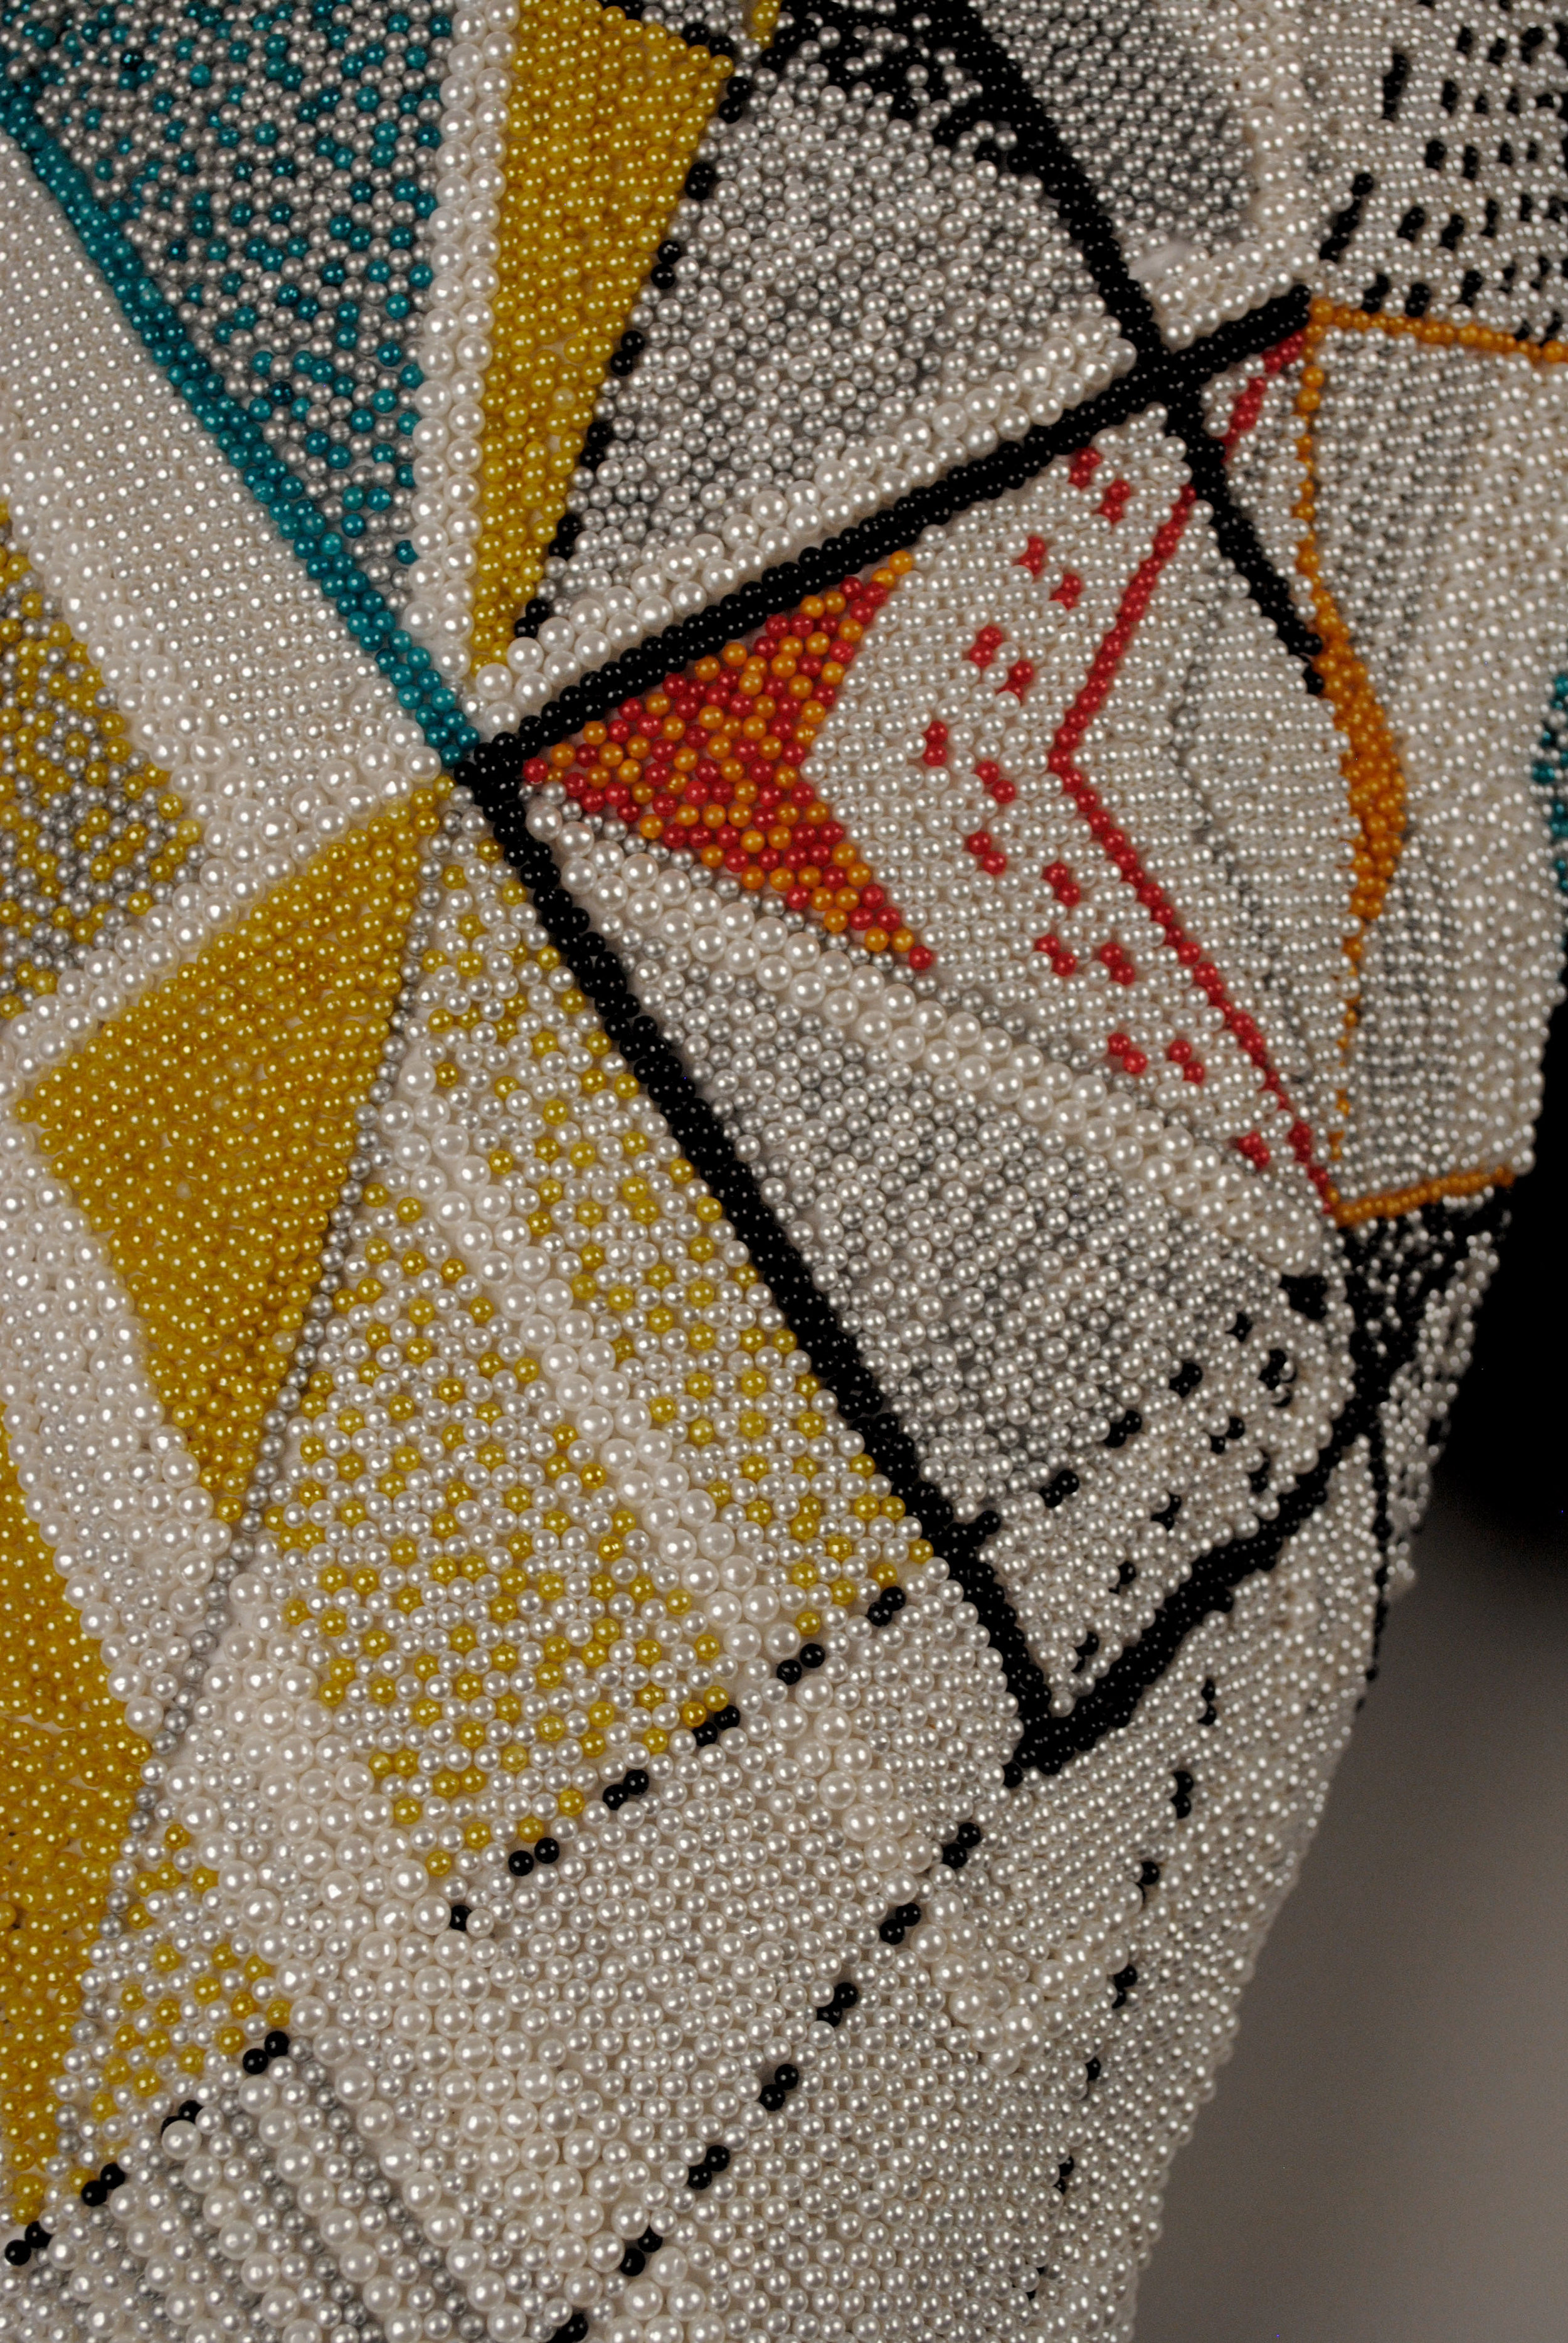 Pantaloncini: Work No. 069 (Emma) (detail)  52,692 pearl corsage pins and colored dress pins, fabric, steel, 28 x 38 x 17 inches, 2017